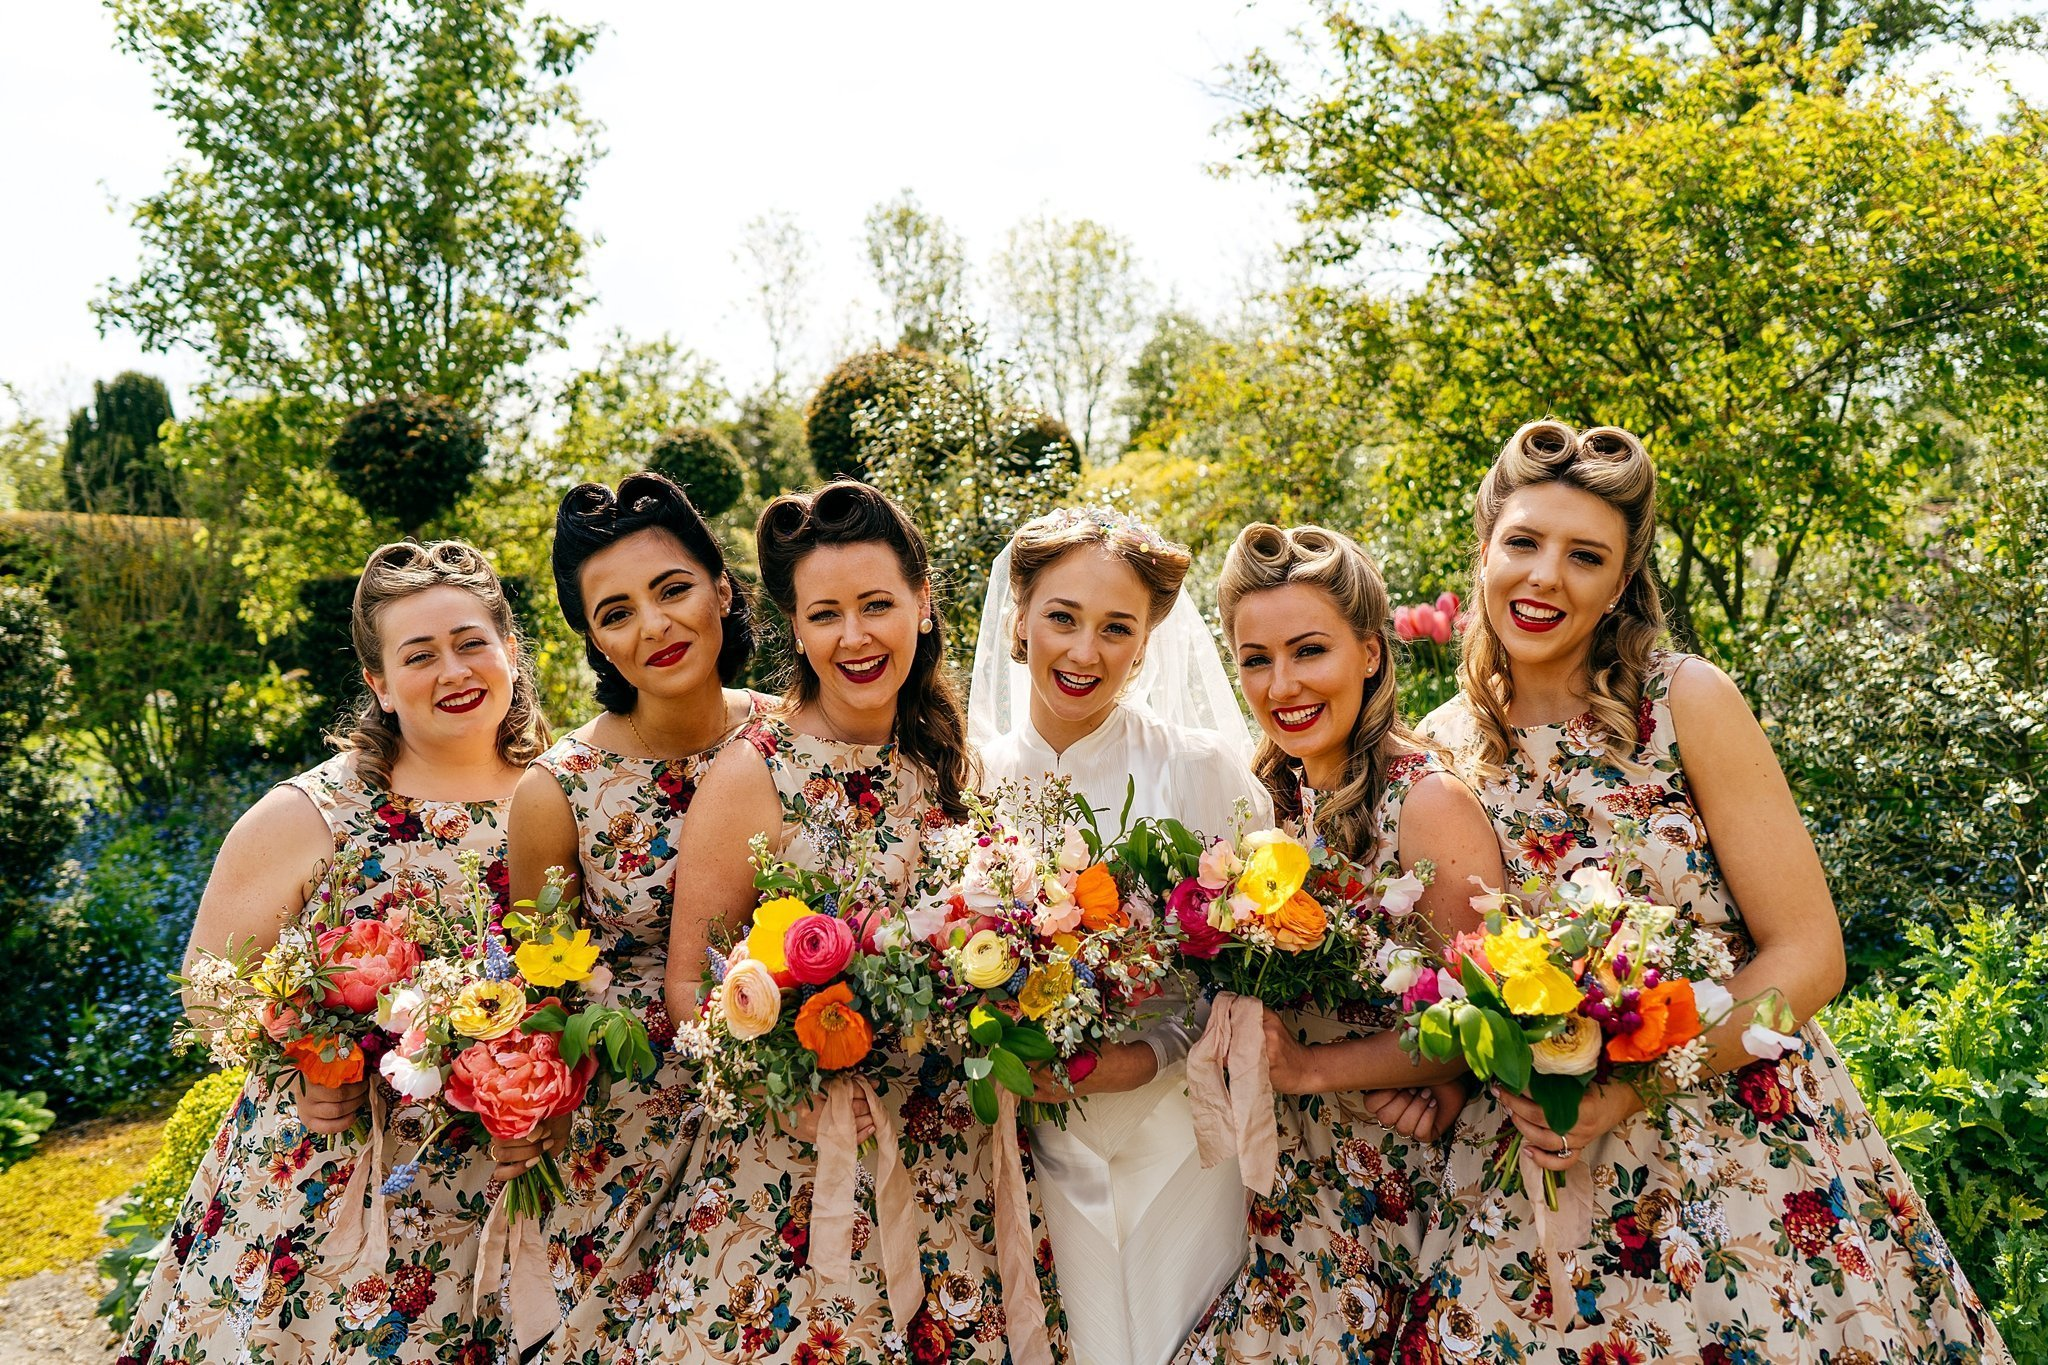 Bride and bridesmaids in Private gardens at Oxleaze Barn Wedding